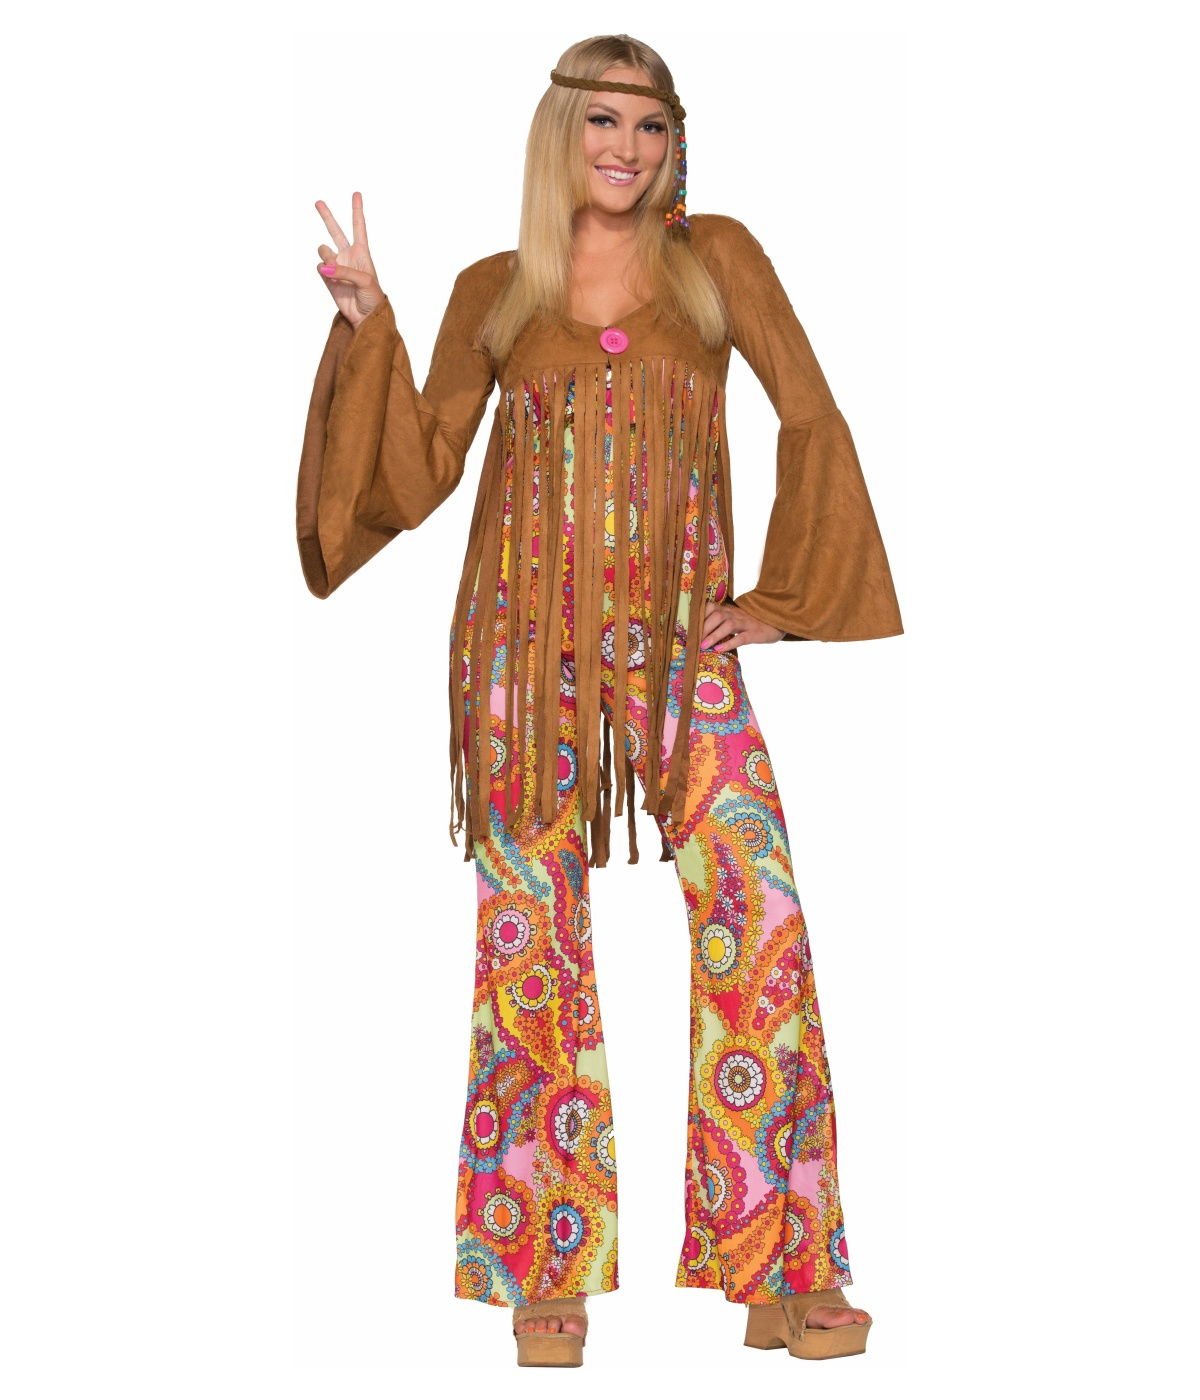 Woodstock Sweetie Hippie Womens Costume - Hippie costumes